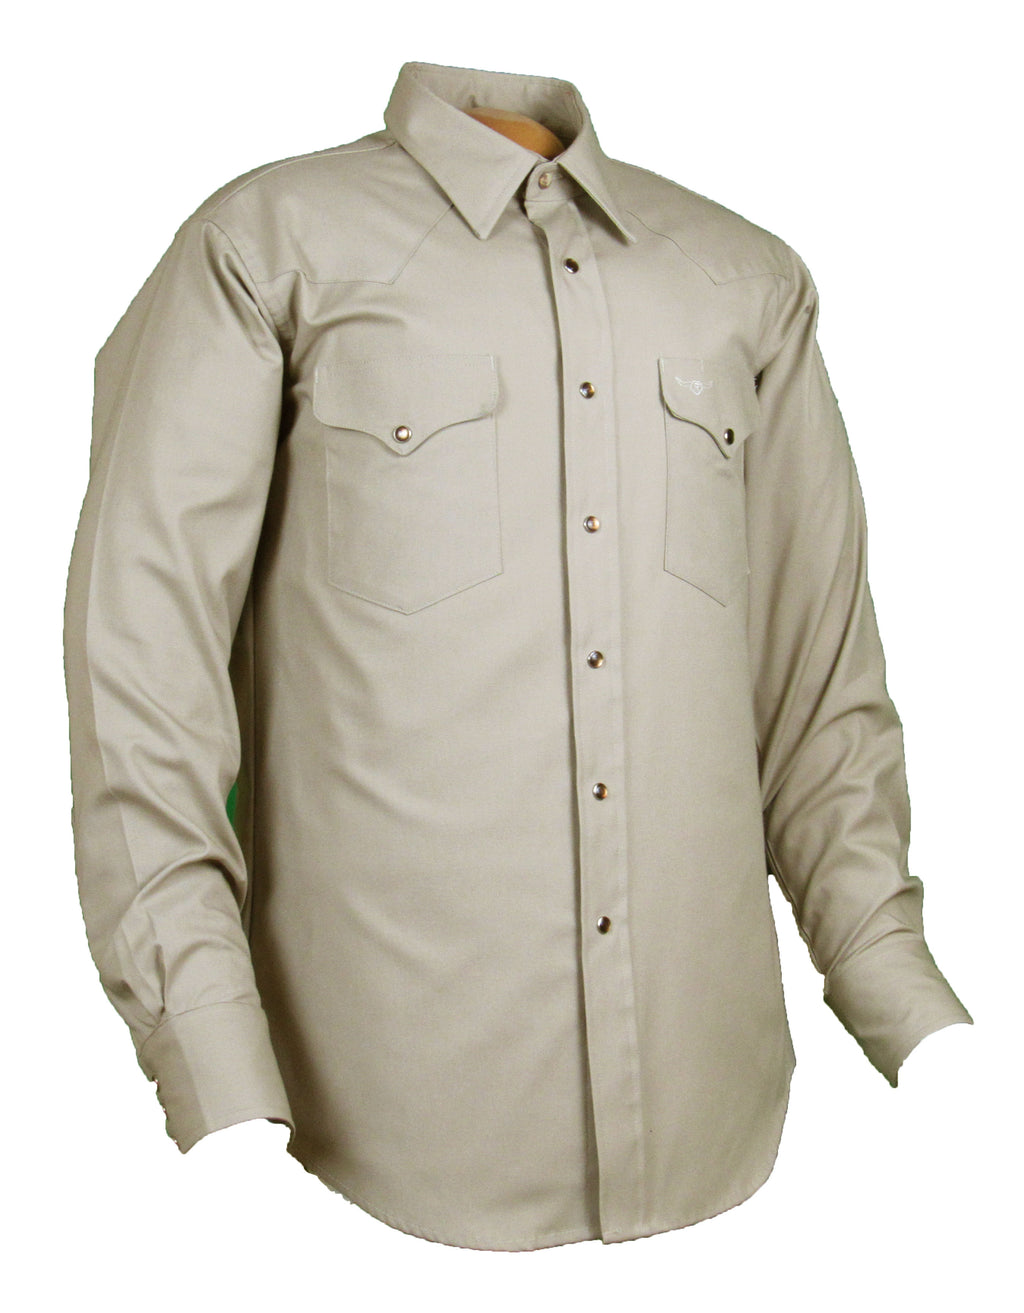 Flying R Ranchwear - Solid Oxford - Khaki - Snaps